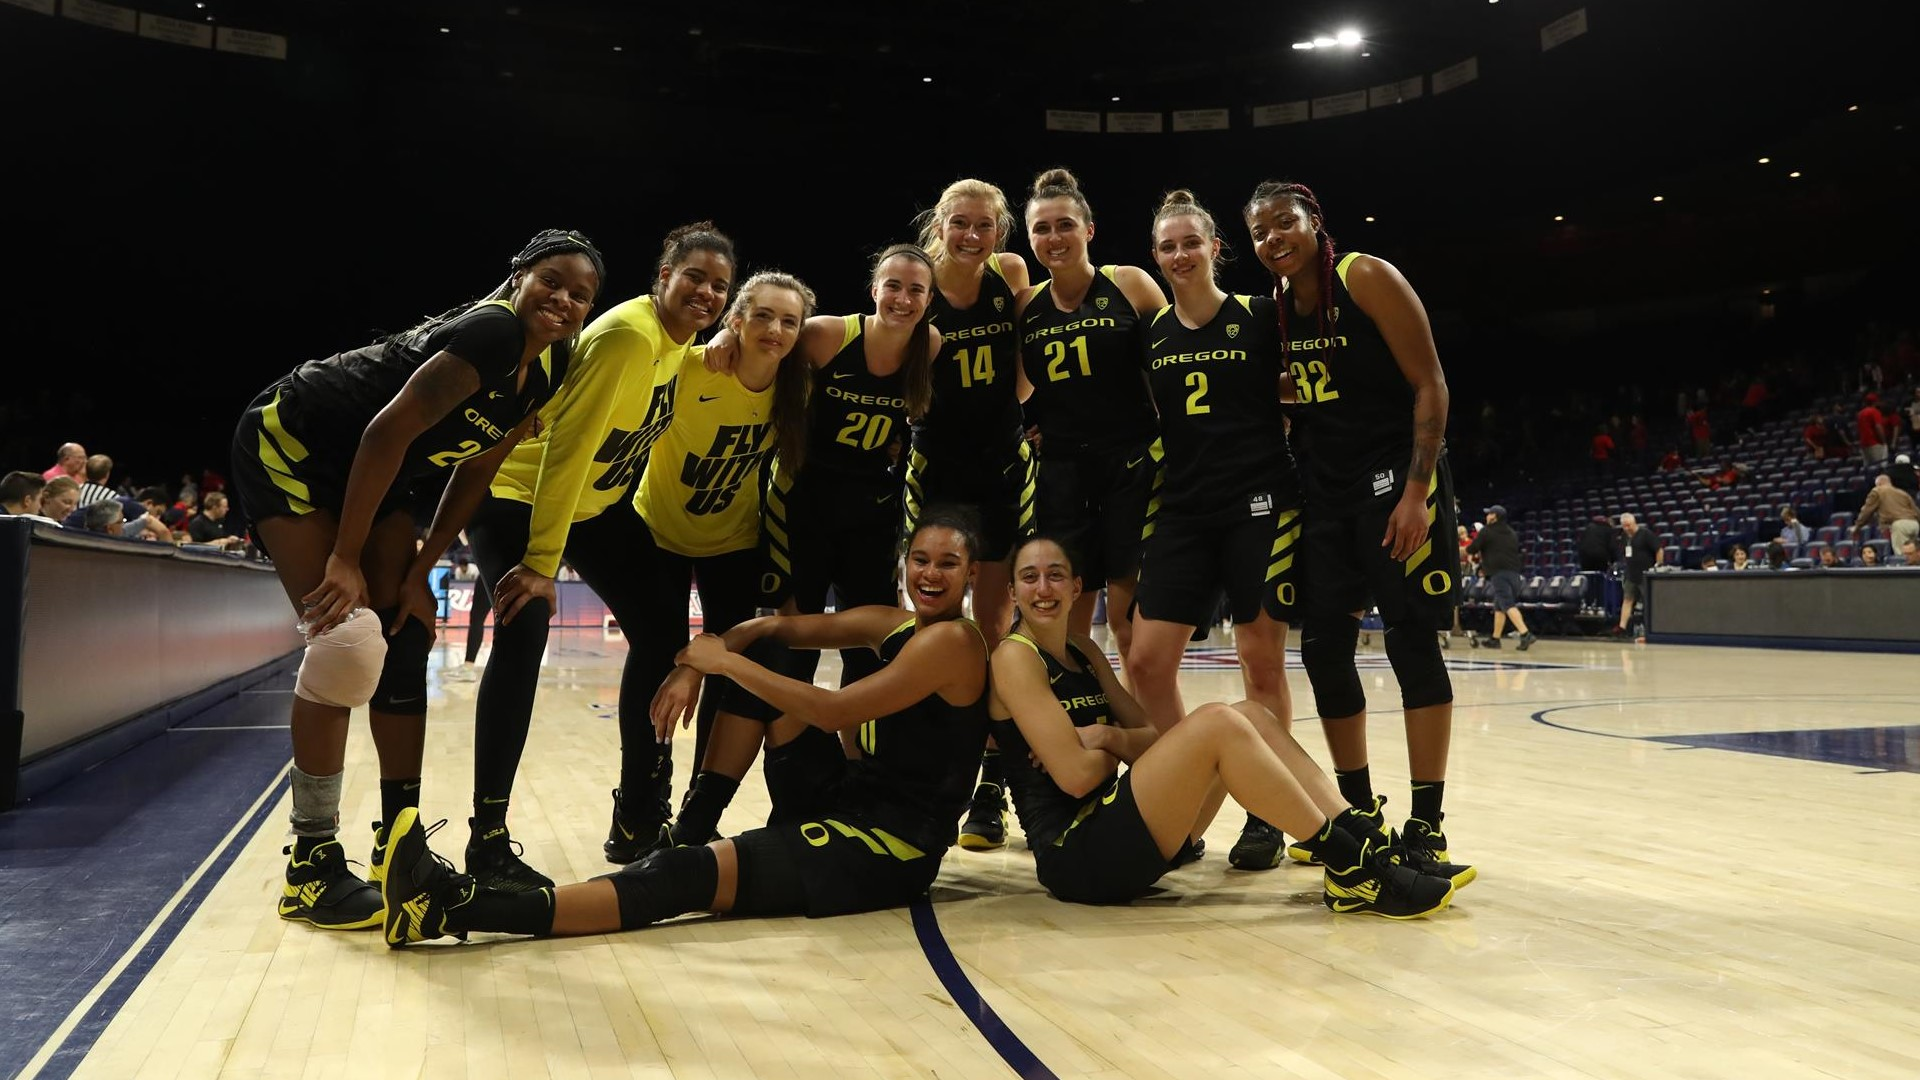 Oregon Clinches Share of Pac-12 Title with Win at Arizona